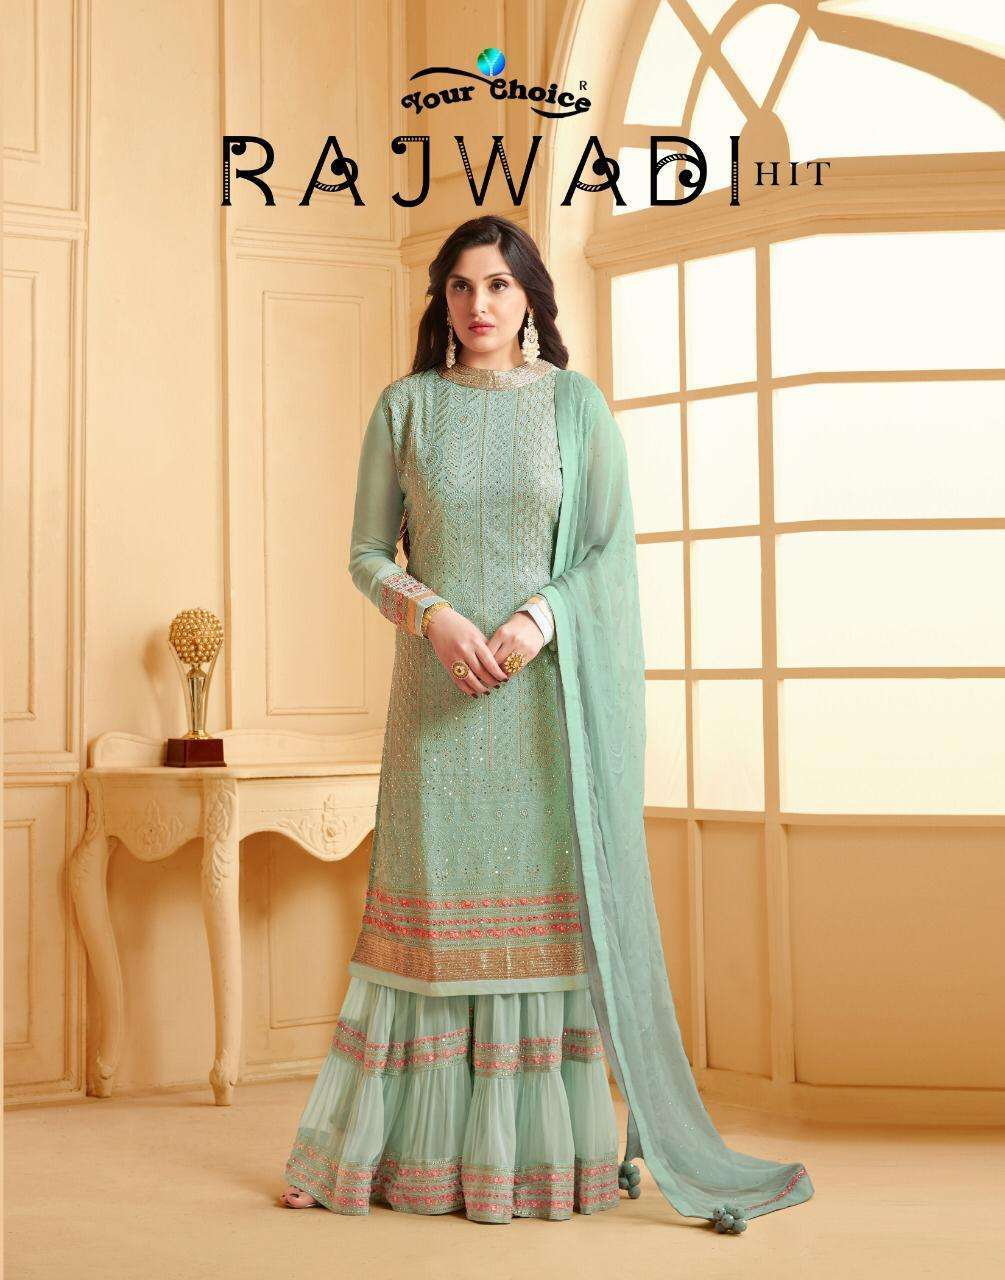 Your choice Rajwadi Hits Faux georgette With Embroidery Work Sharara Suits collection